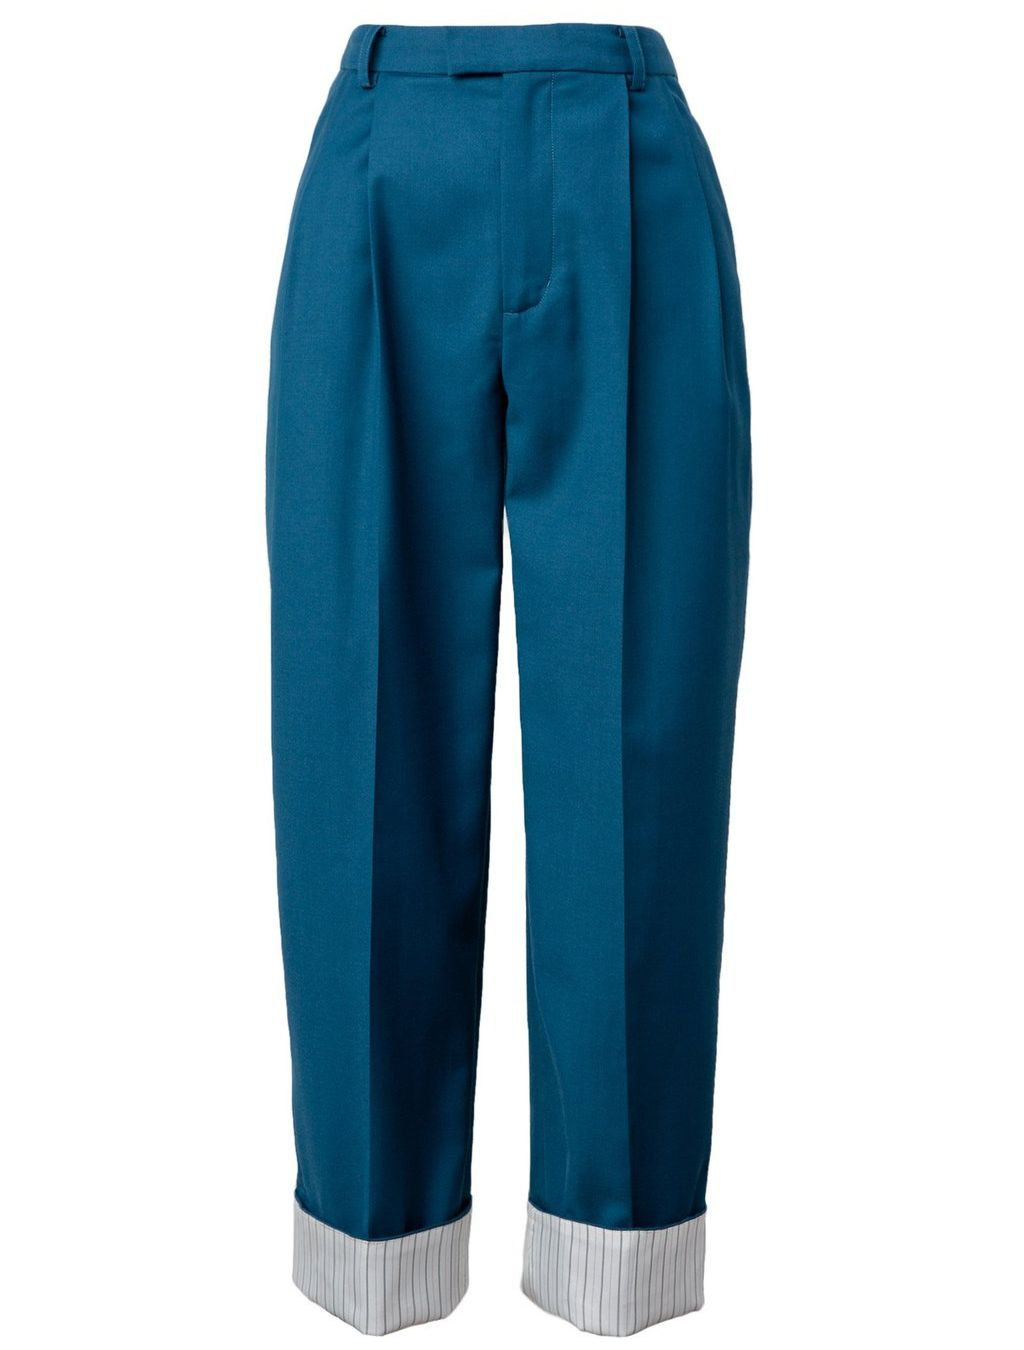 josie pants in turquoise by j.ing women's clothing